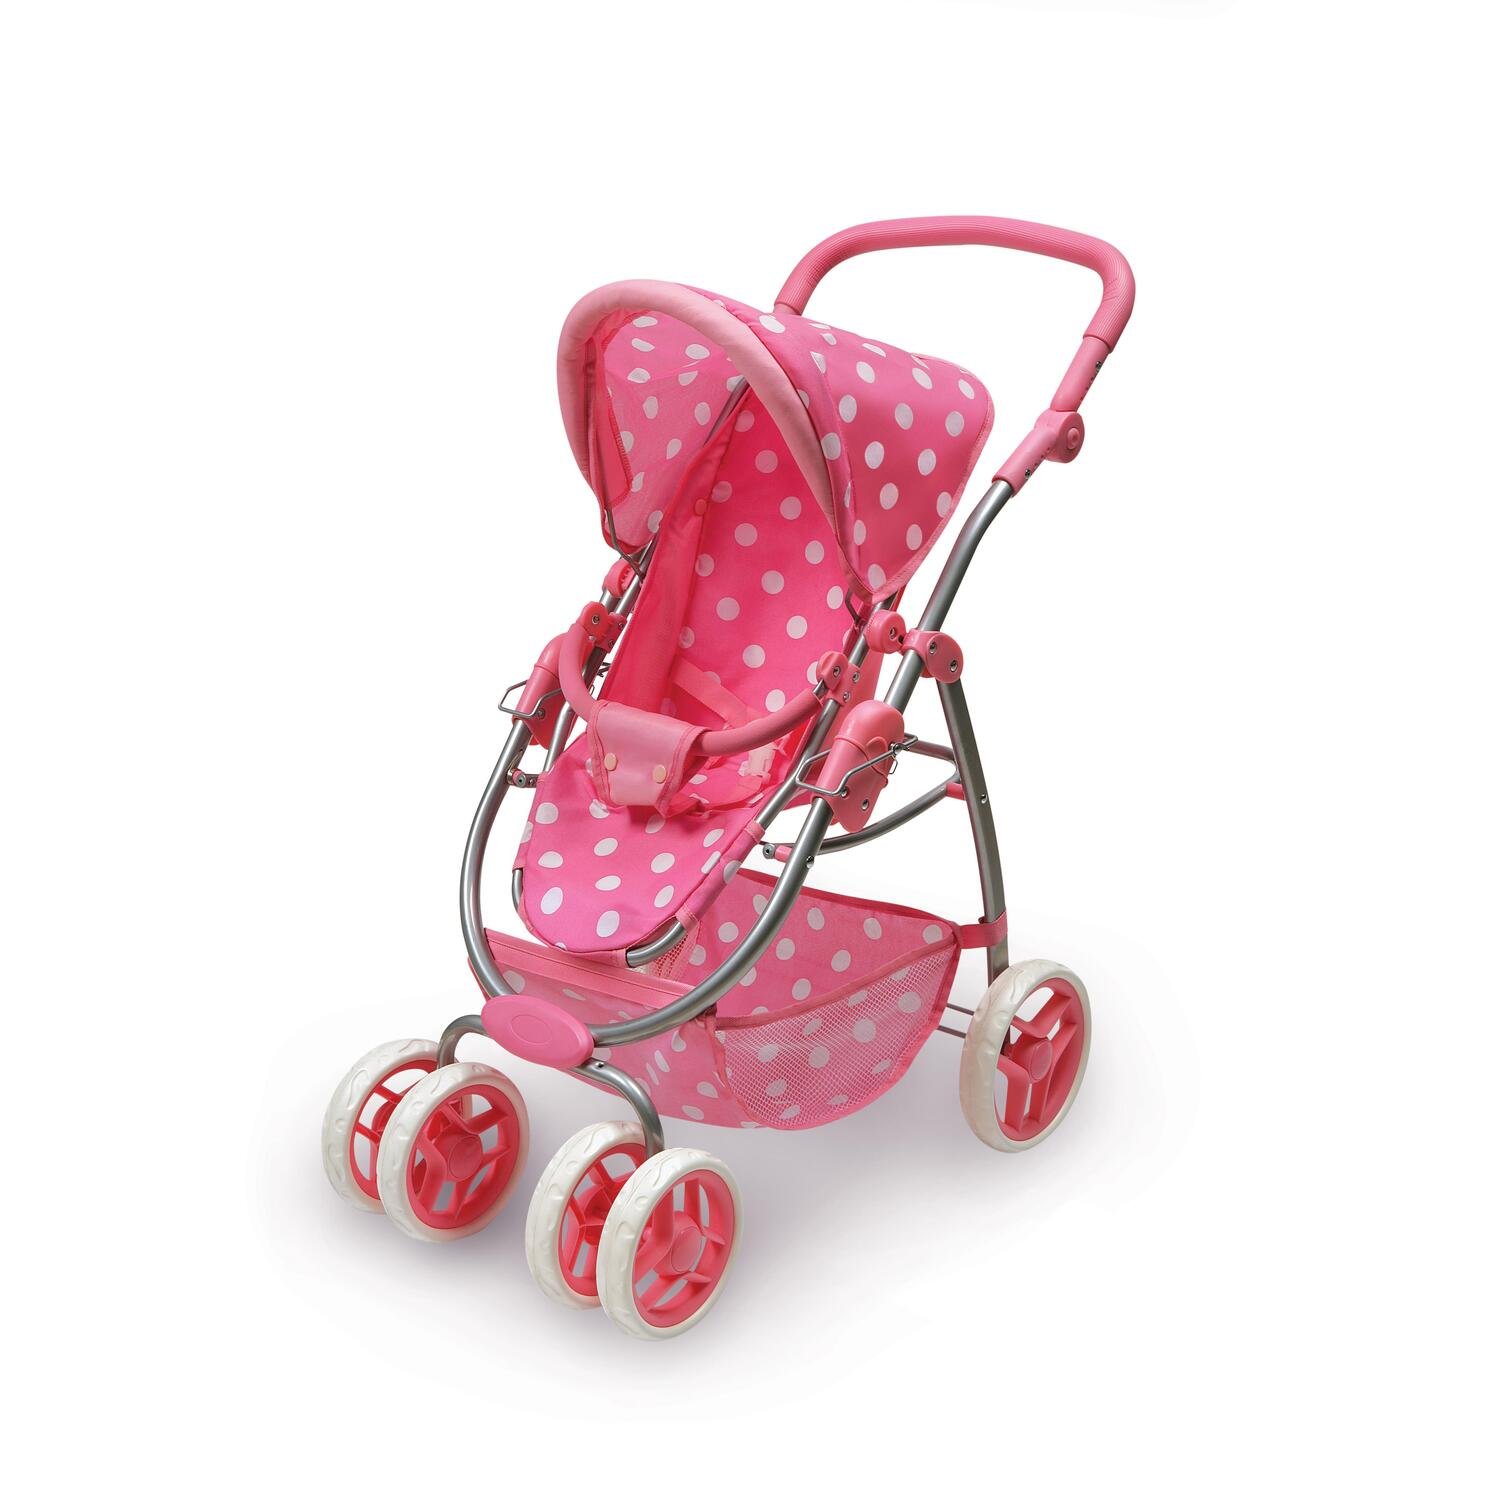 Six Wheel Doll Travel System Stroller and Carrier - Pink ...